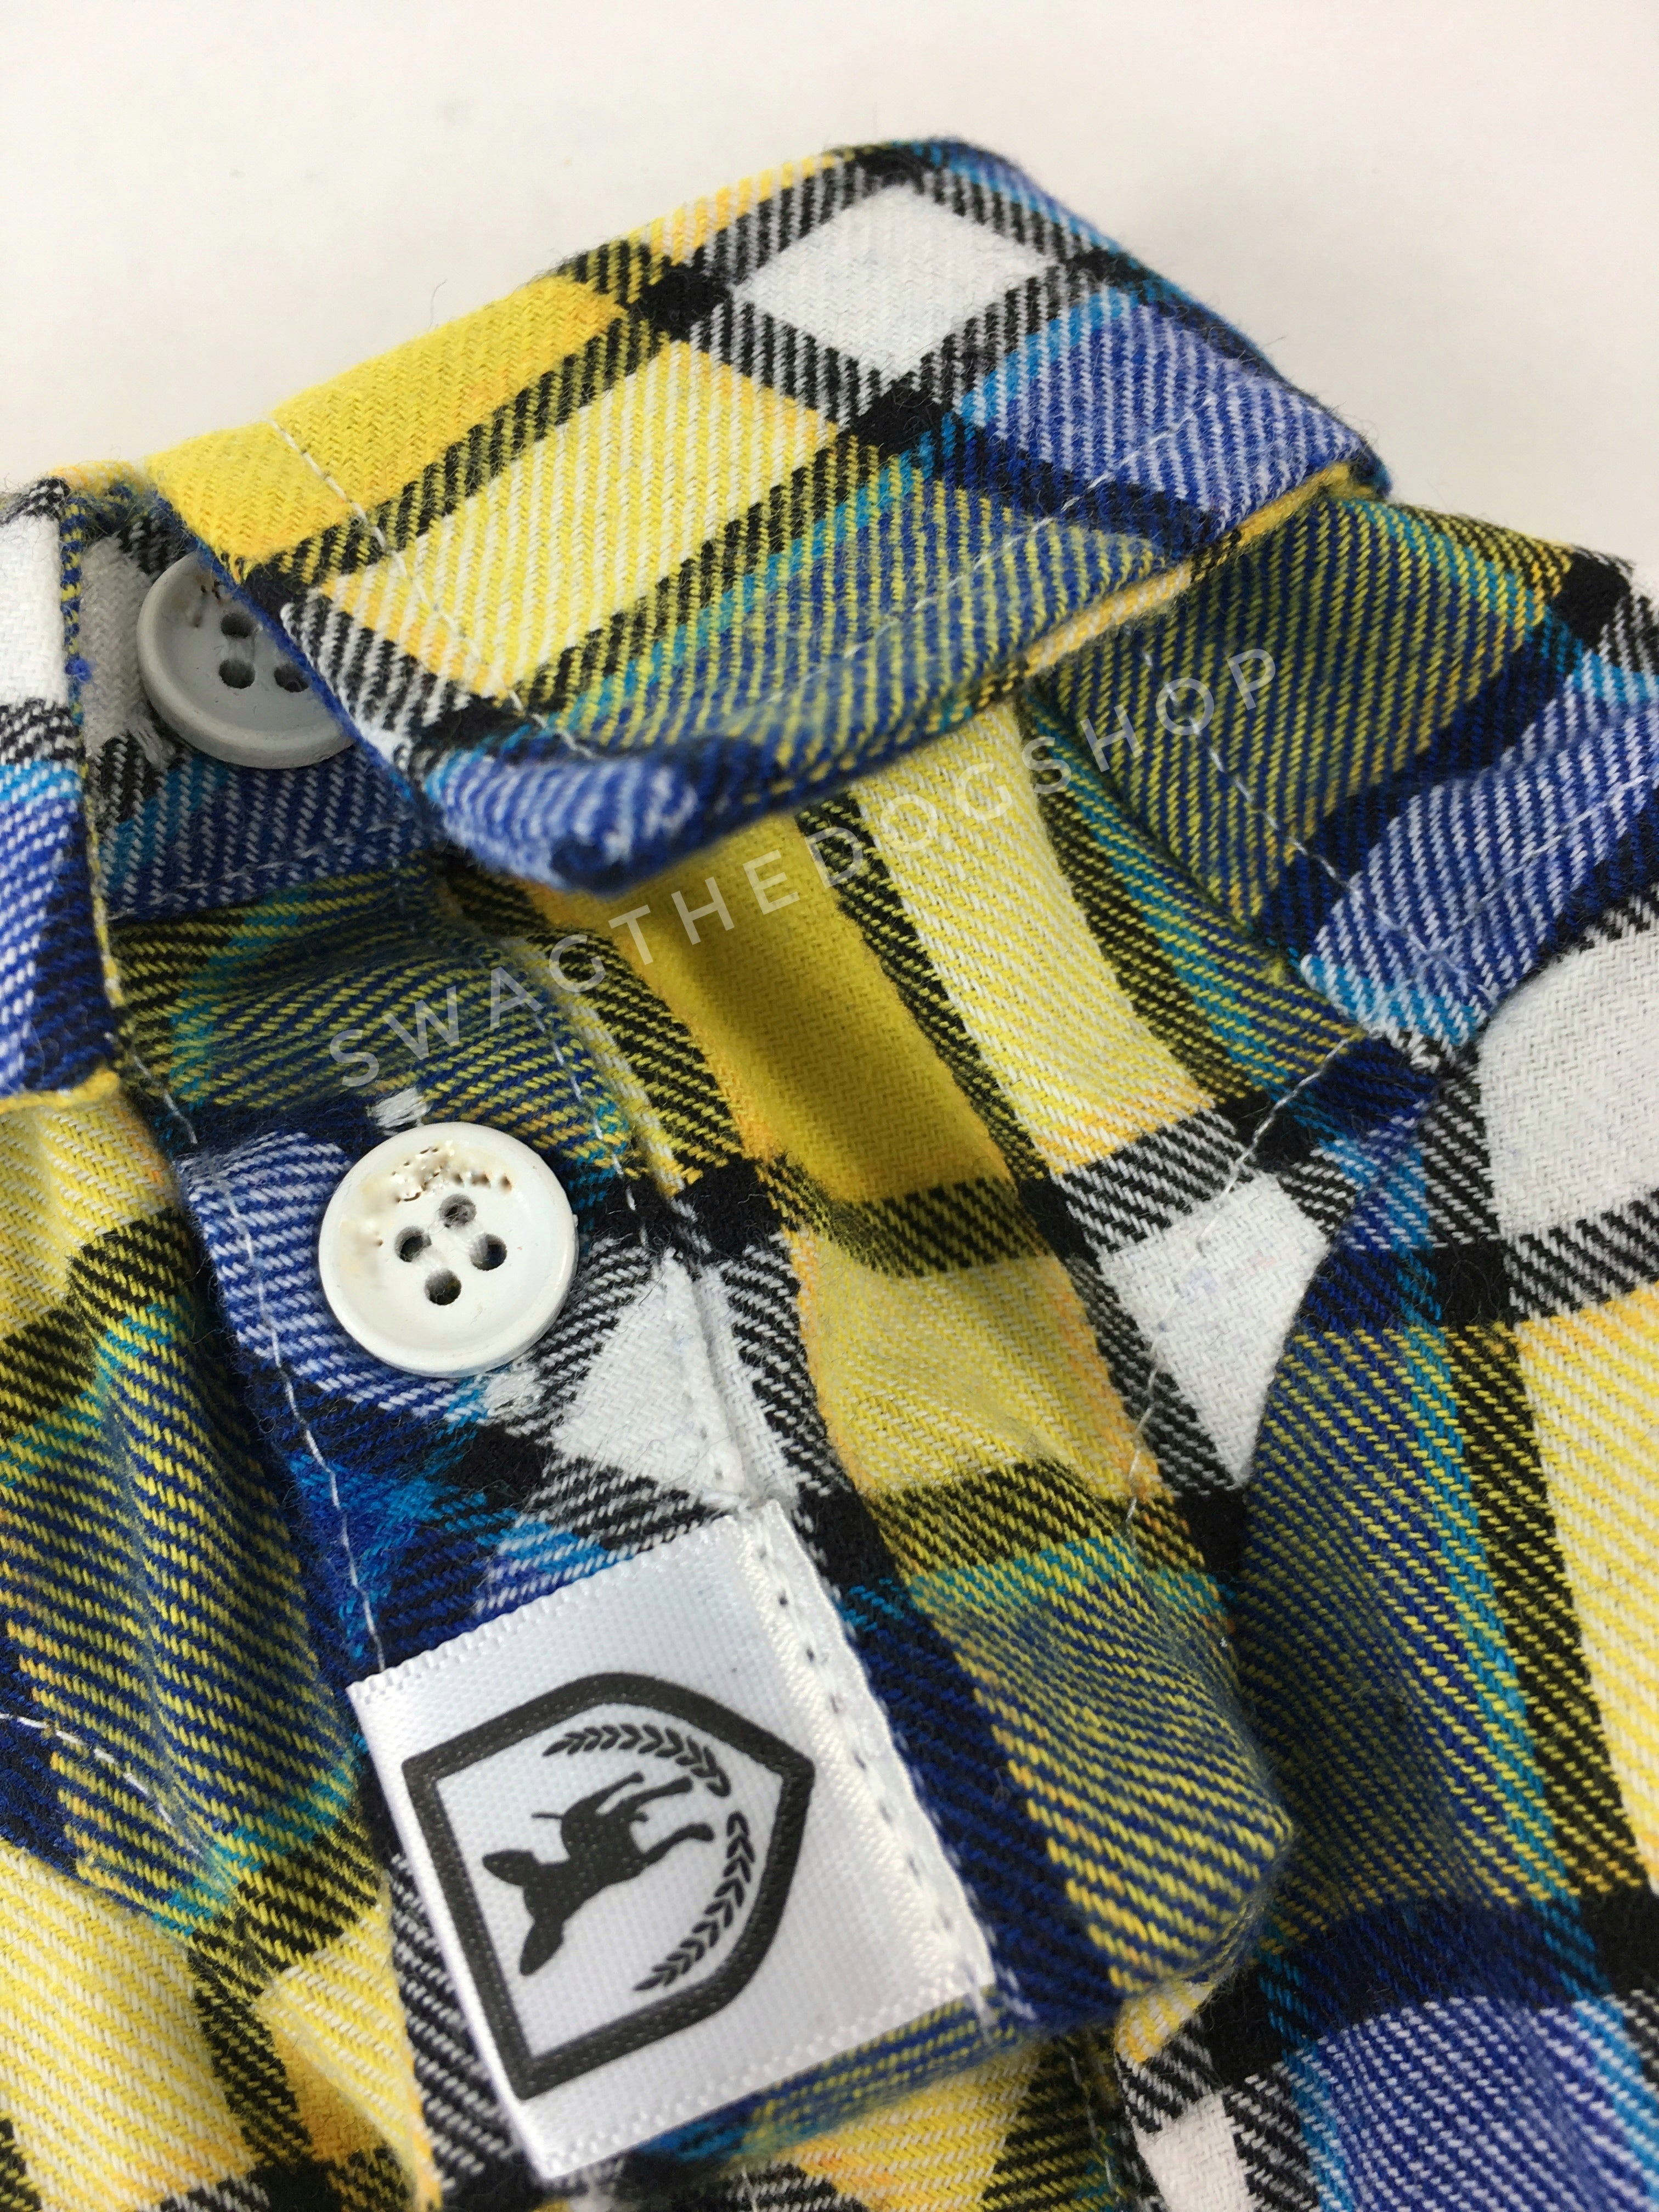 Royal Yellow Plaid Shirt - Close Up View of Label and Collar. Royal Blue and Yellow Plaid Shirt